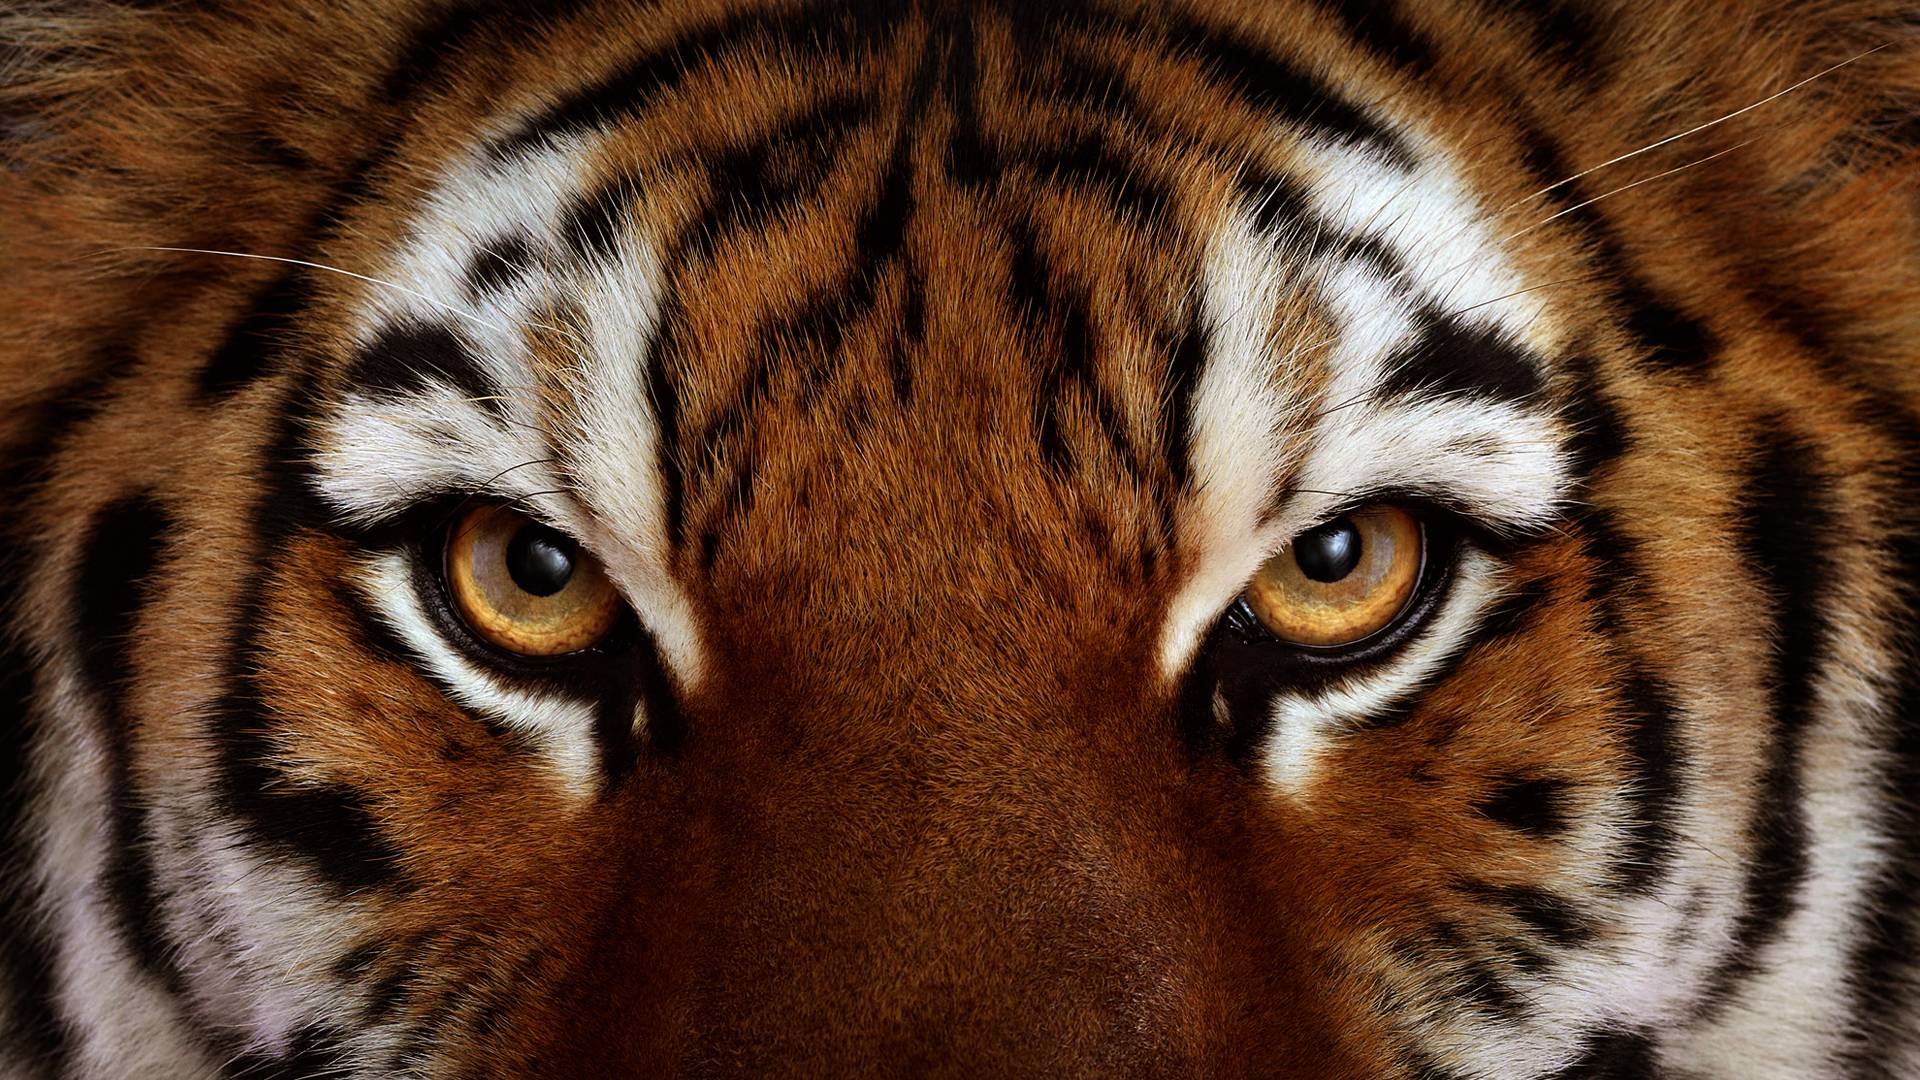 Angry Tiger Wallpapers Wallpaper Cave